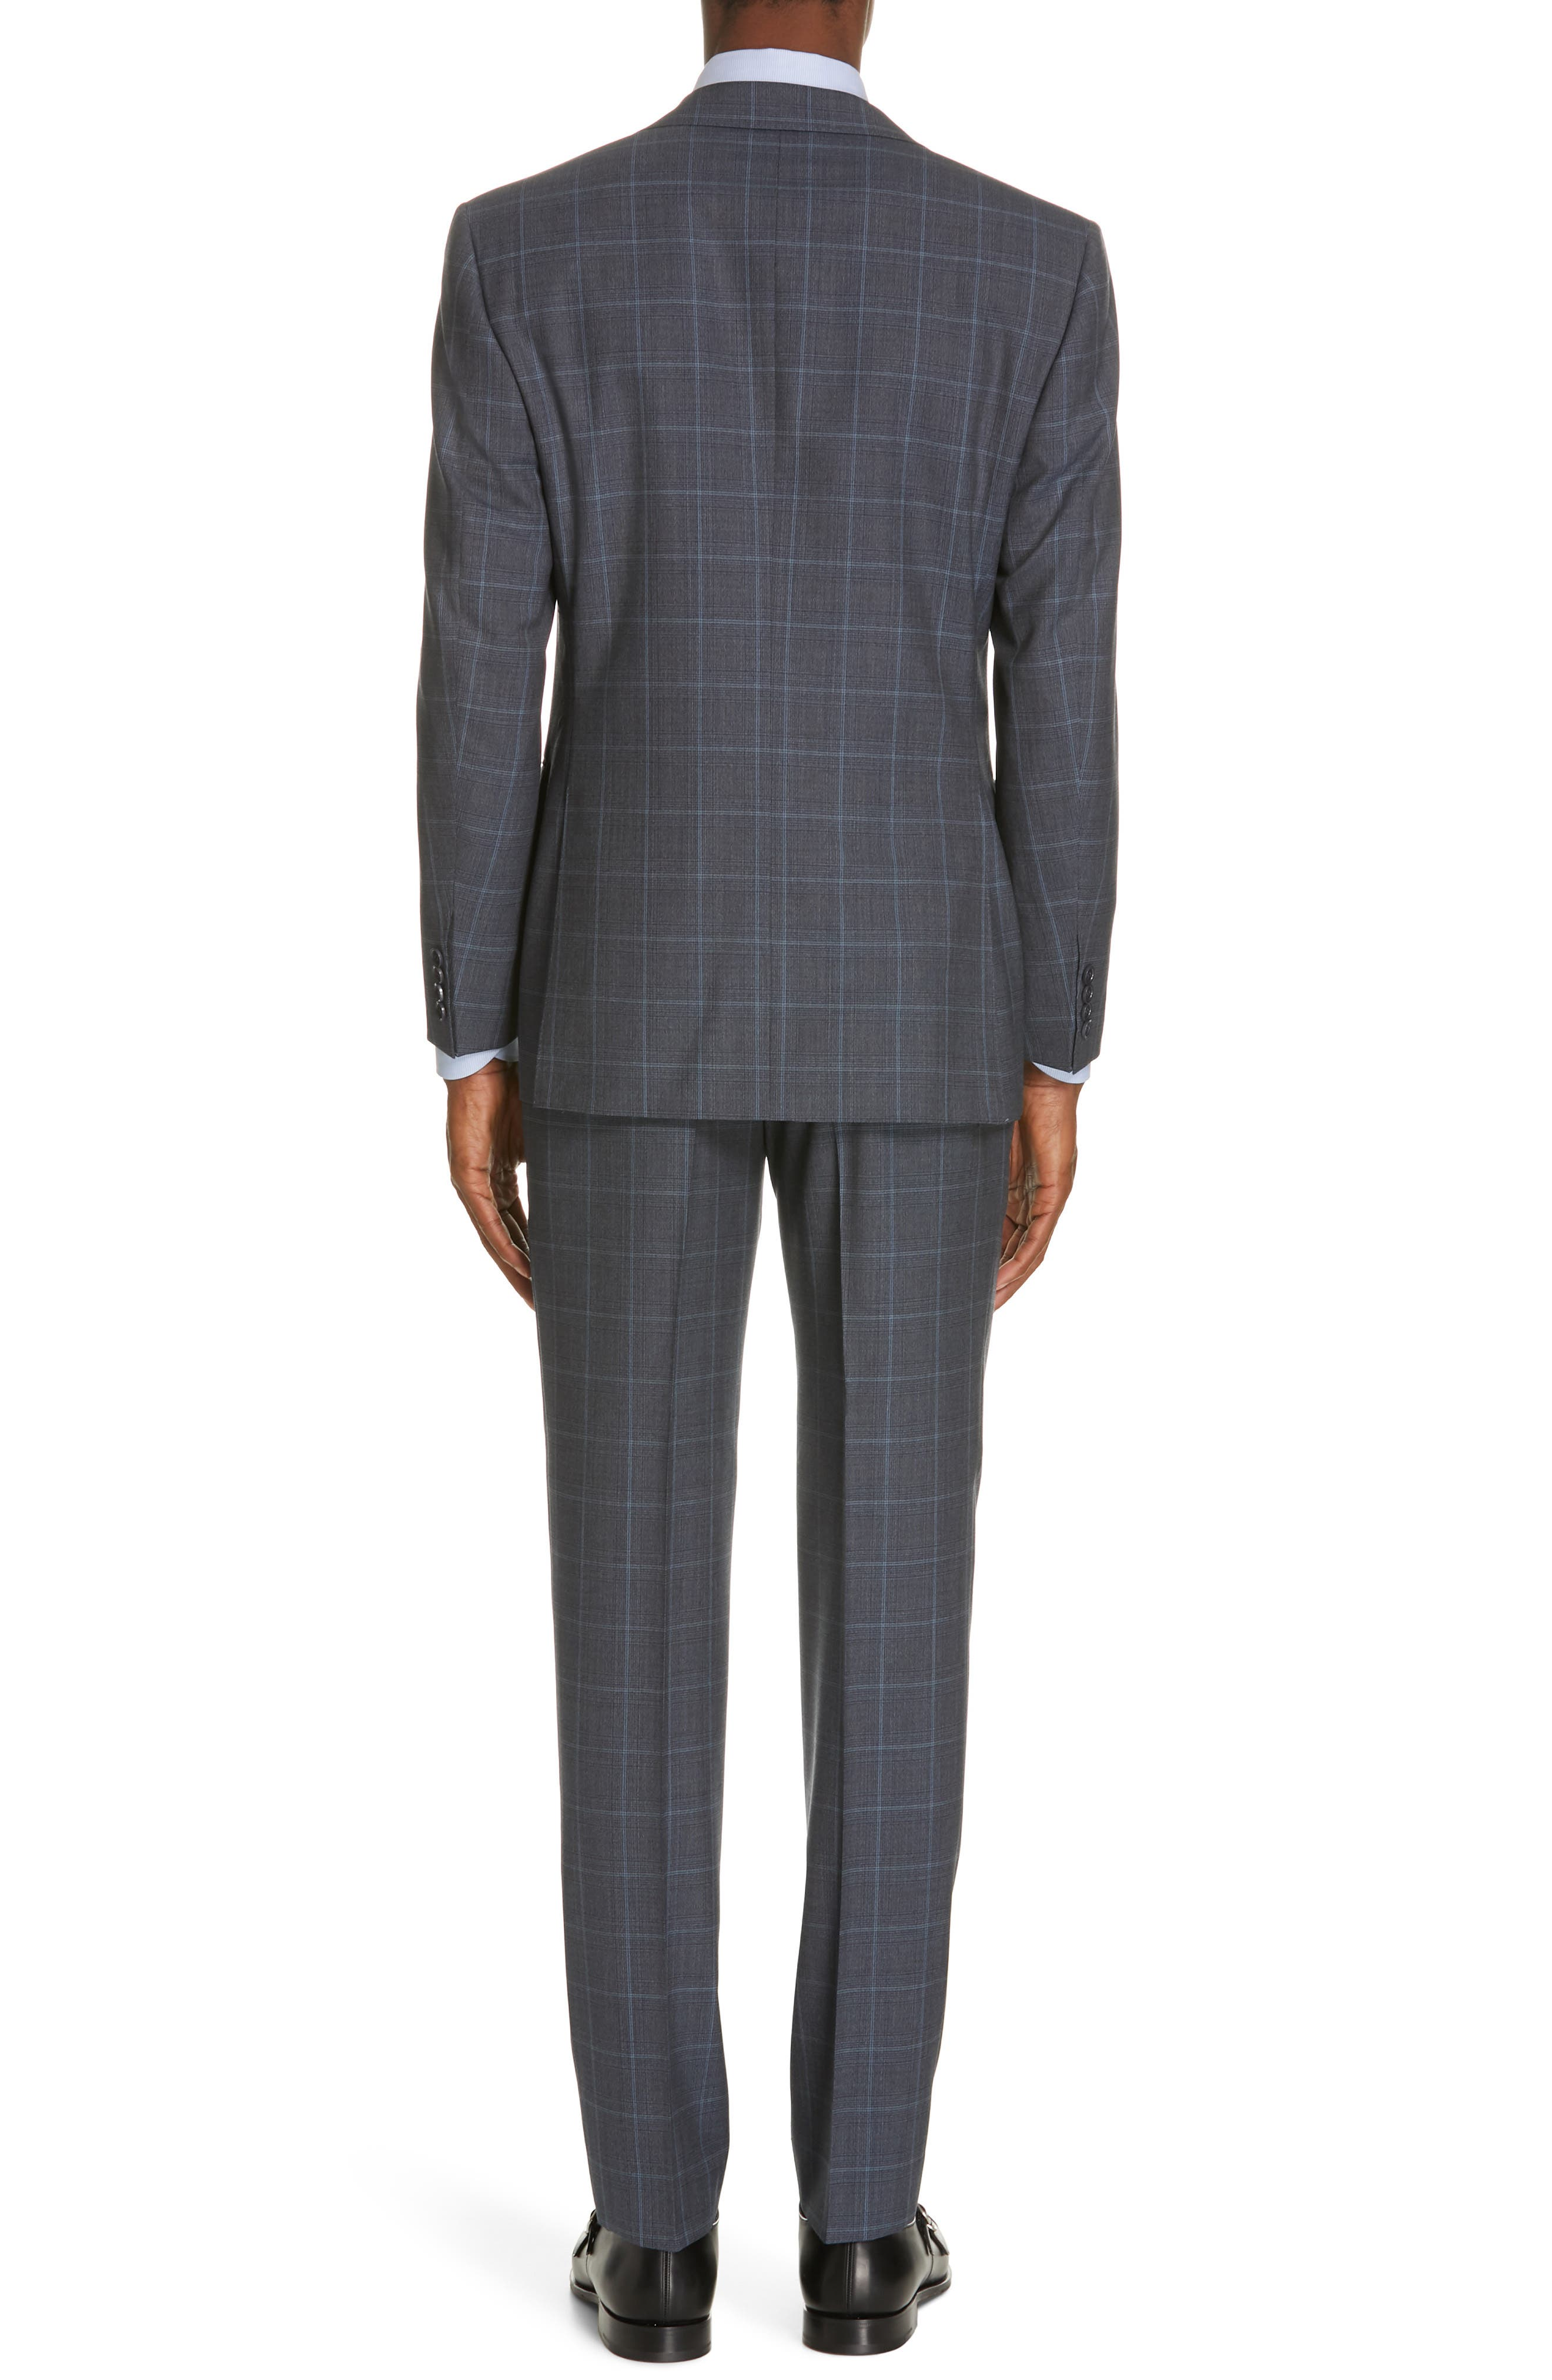 CANALI, Siena Soft Classic Fit Plaid Wool Suit, Alternate thumbnail 2, color, CHARCOAL